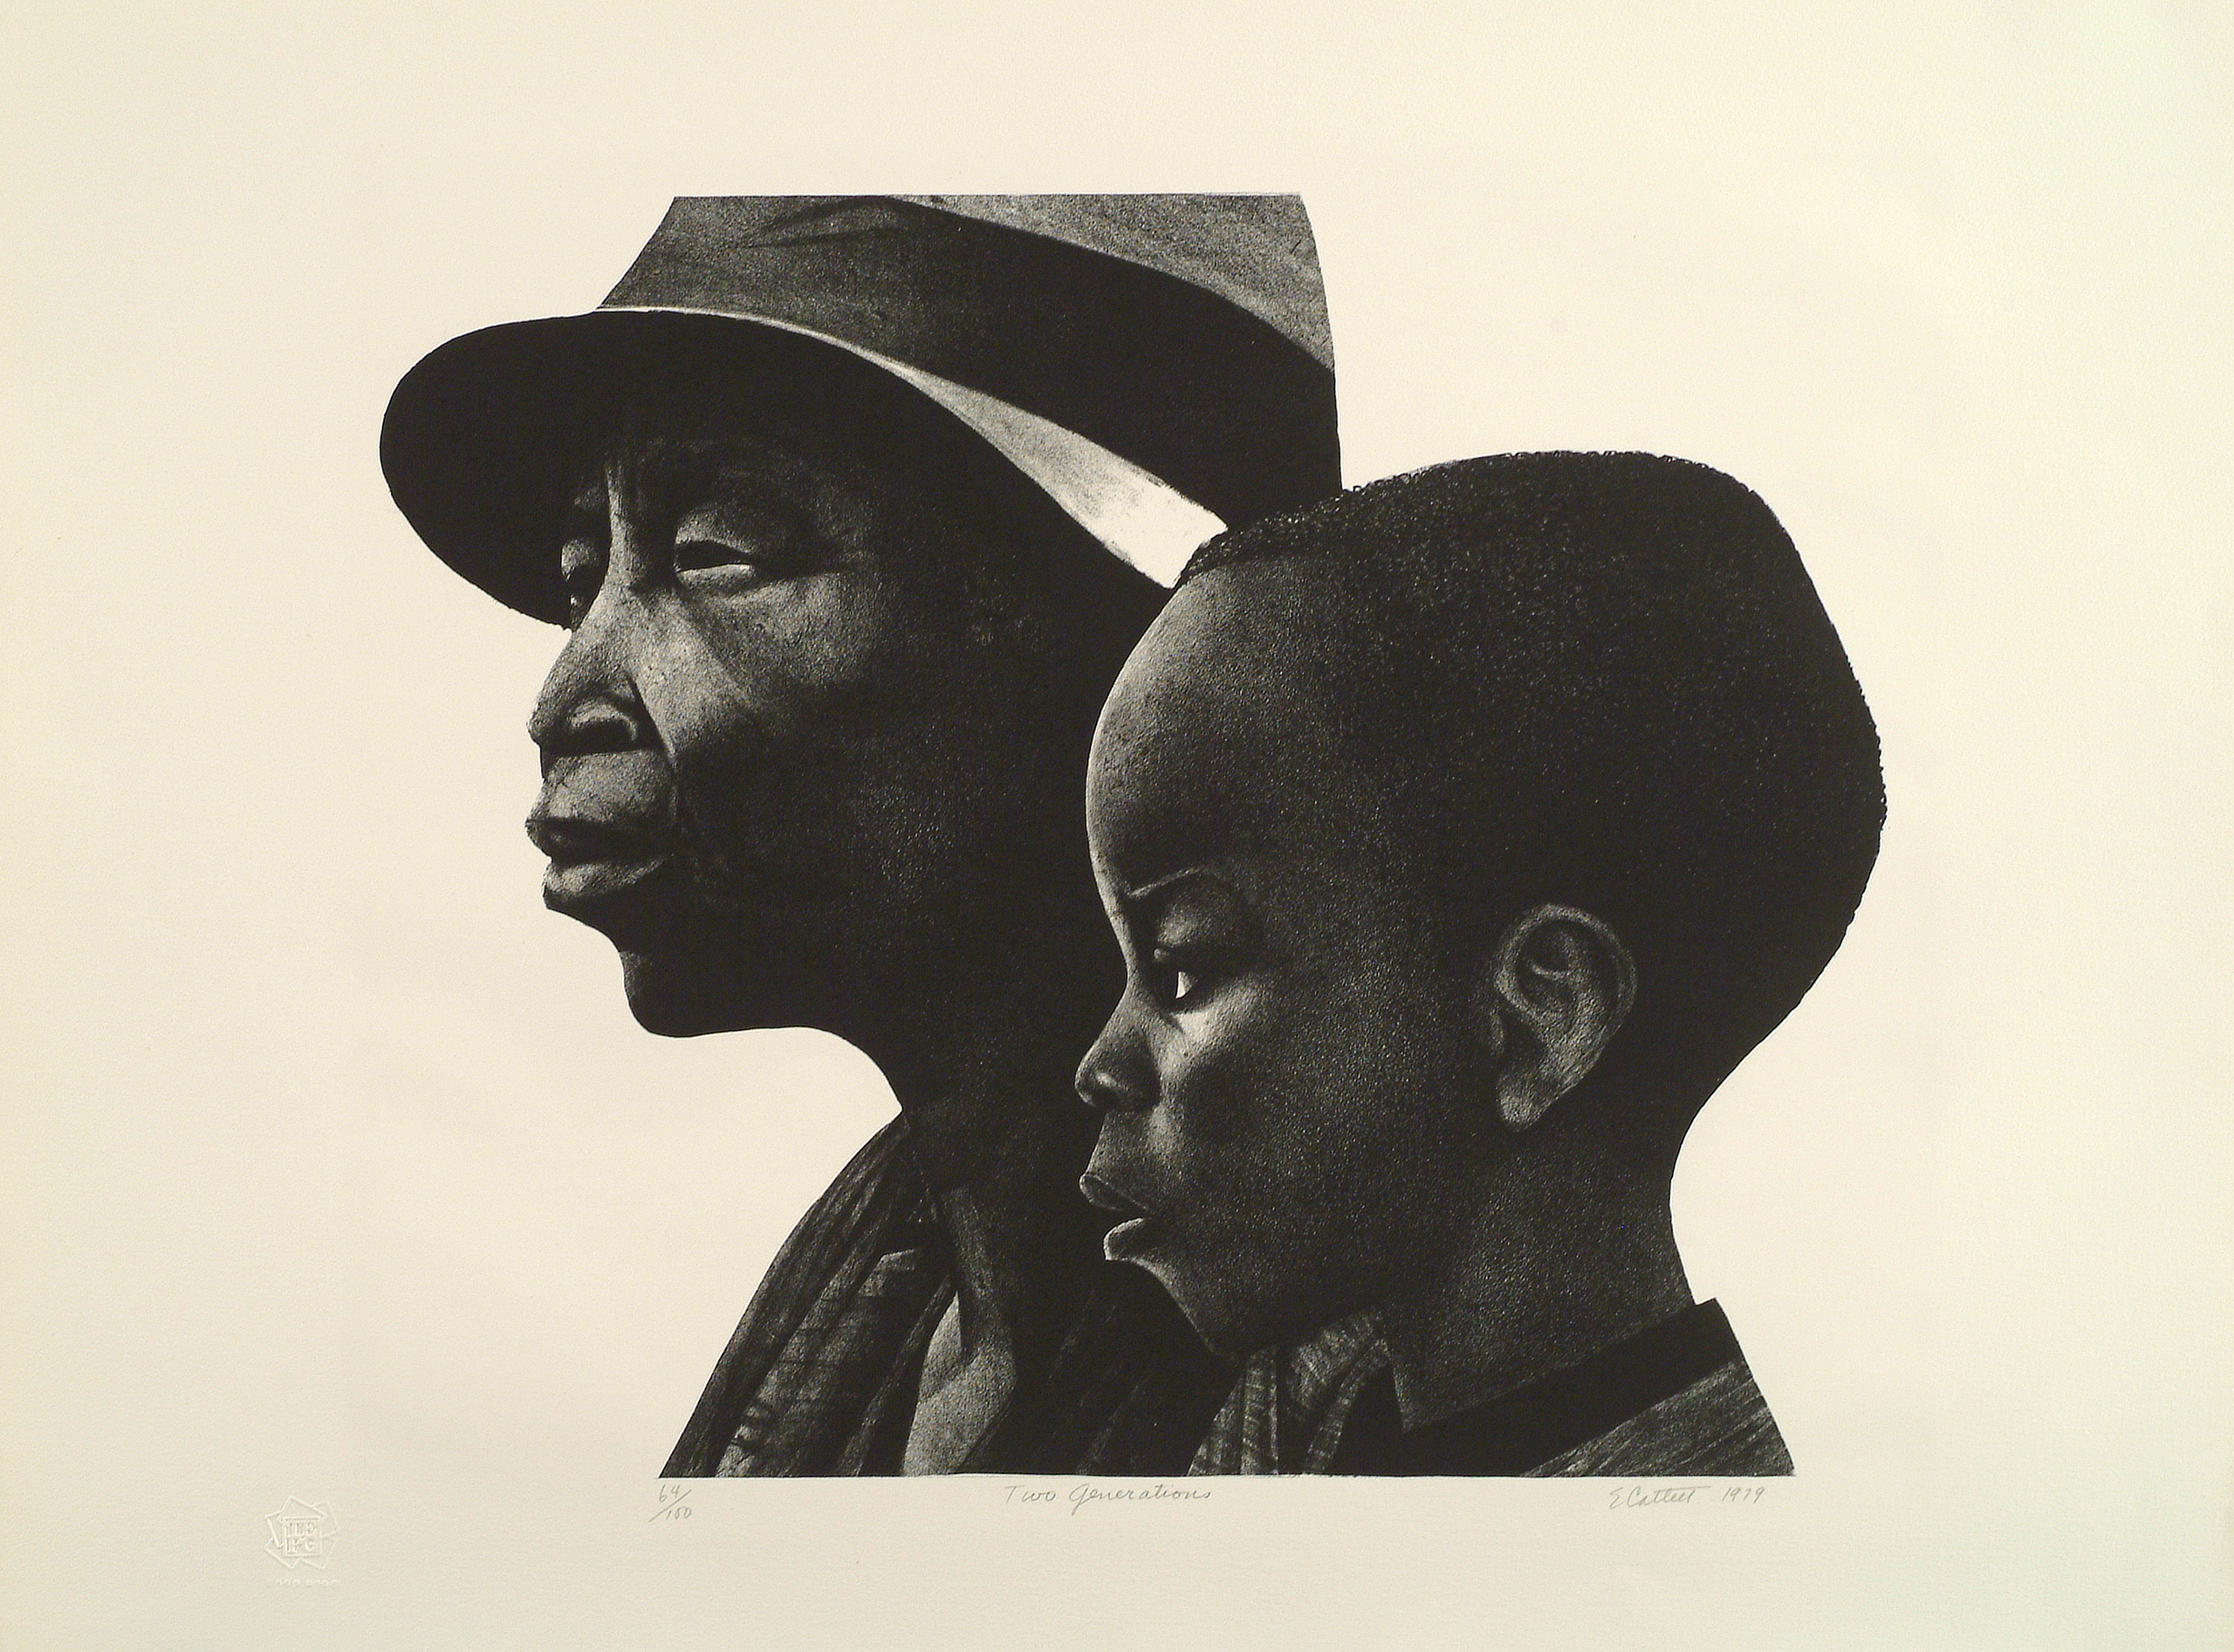 A black-and-white print of two dark-skinned individuals in profile, facing left. The person in the background is an older adult wearing a brimmed hat, and in the foreground and slightly to the right is a young child with coarse hair cut close to the head.